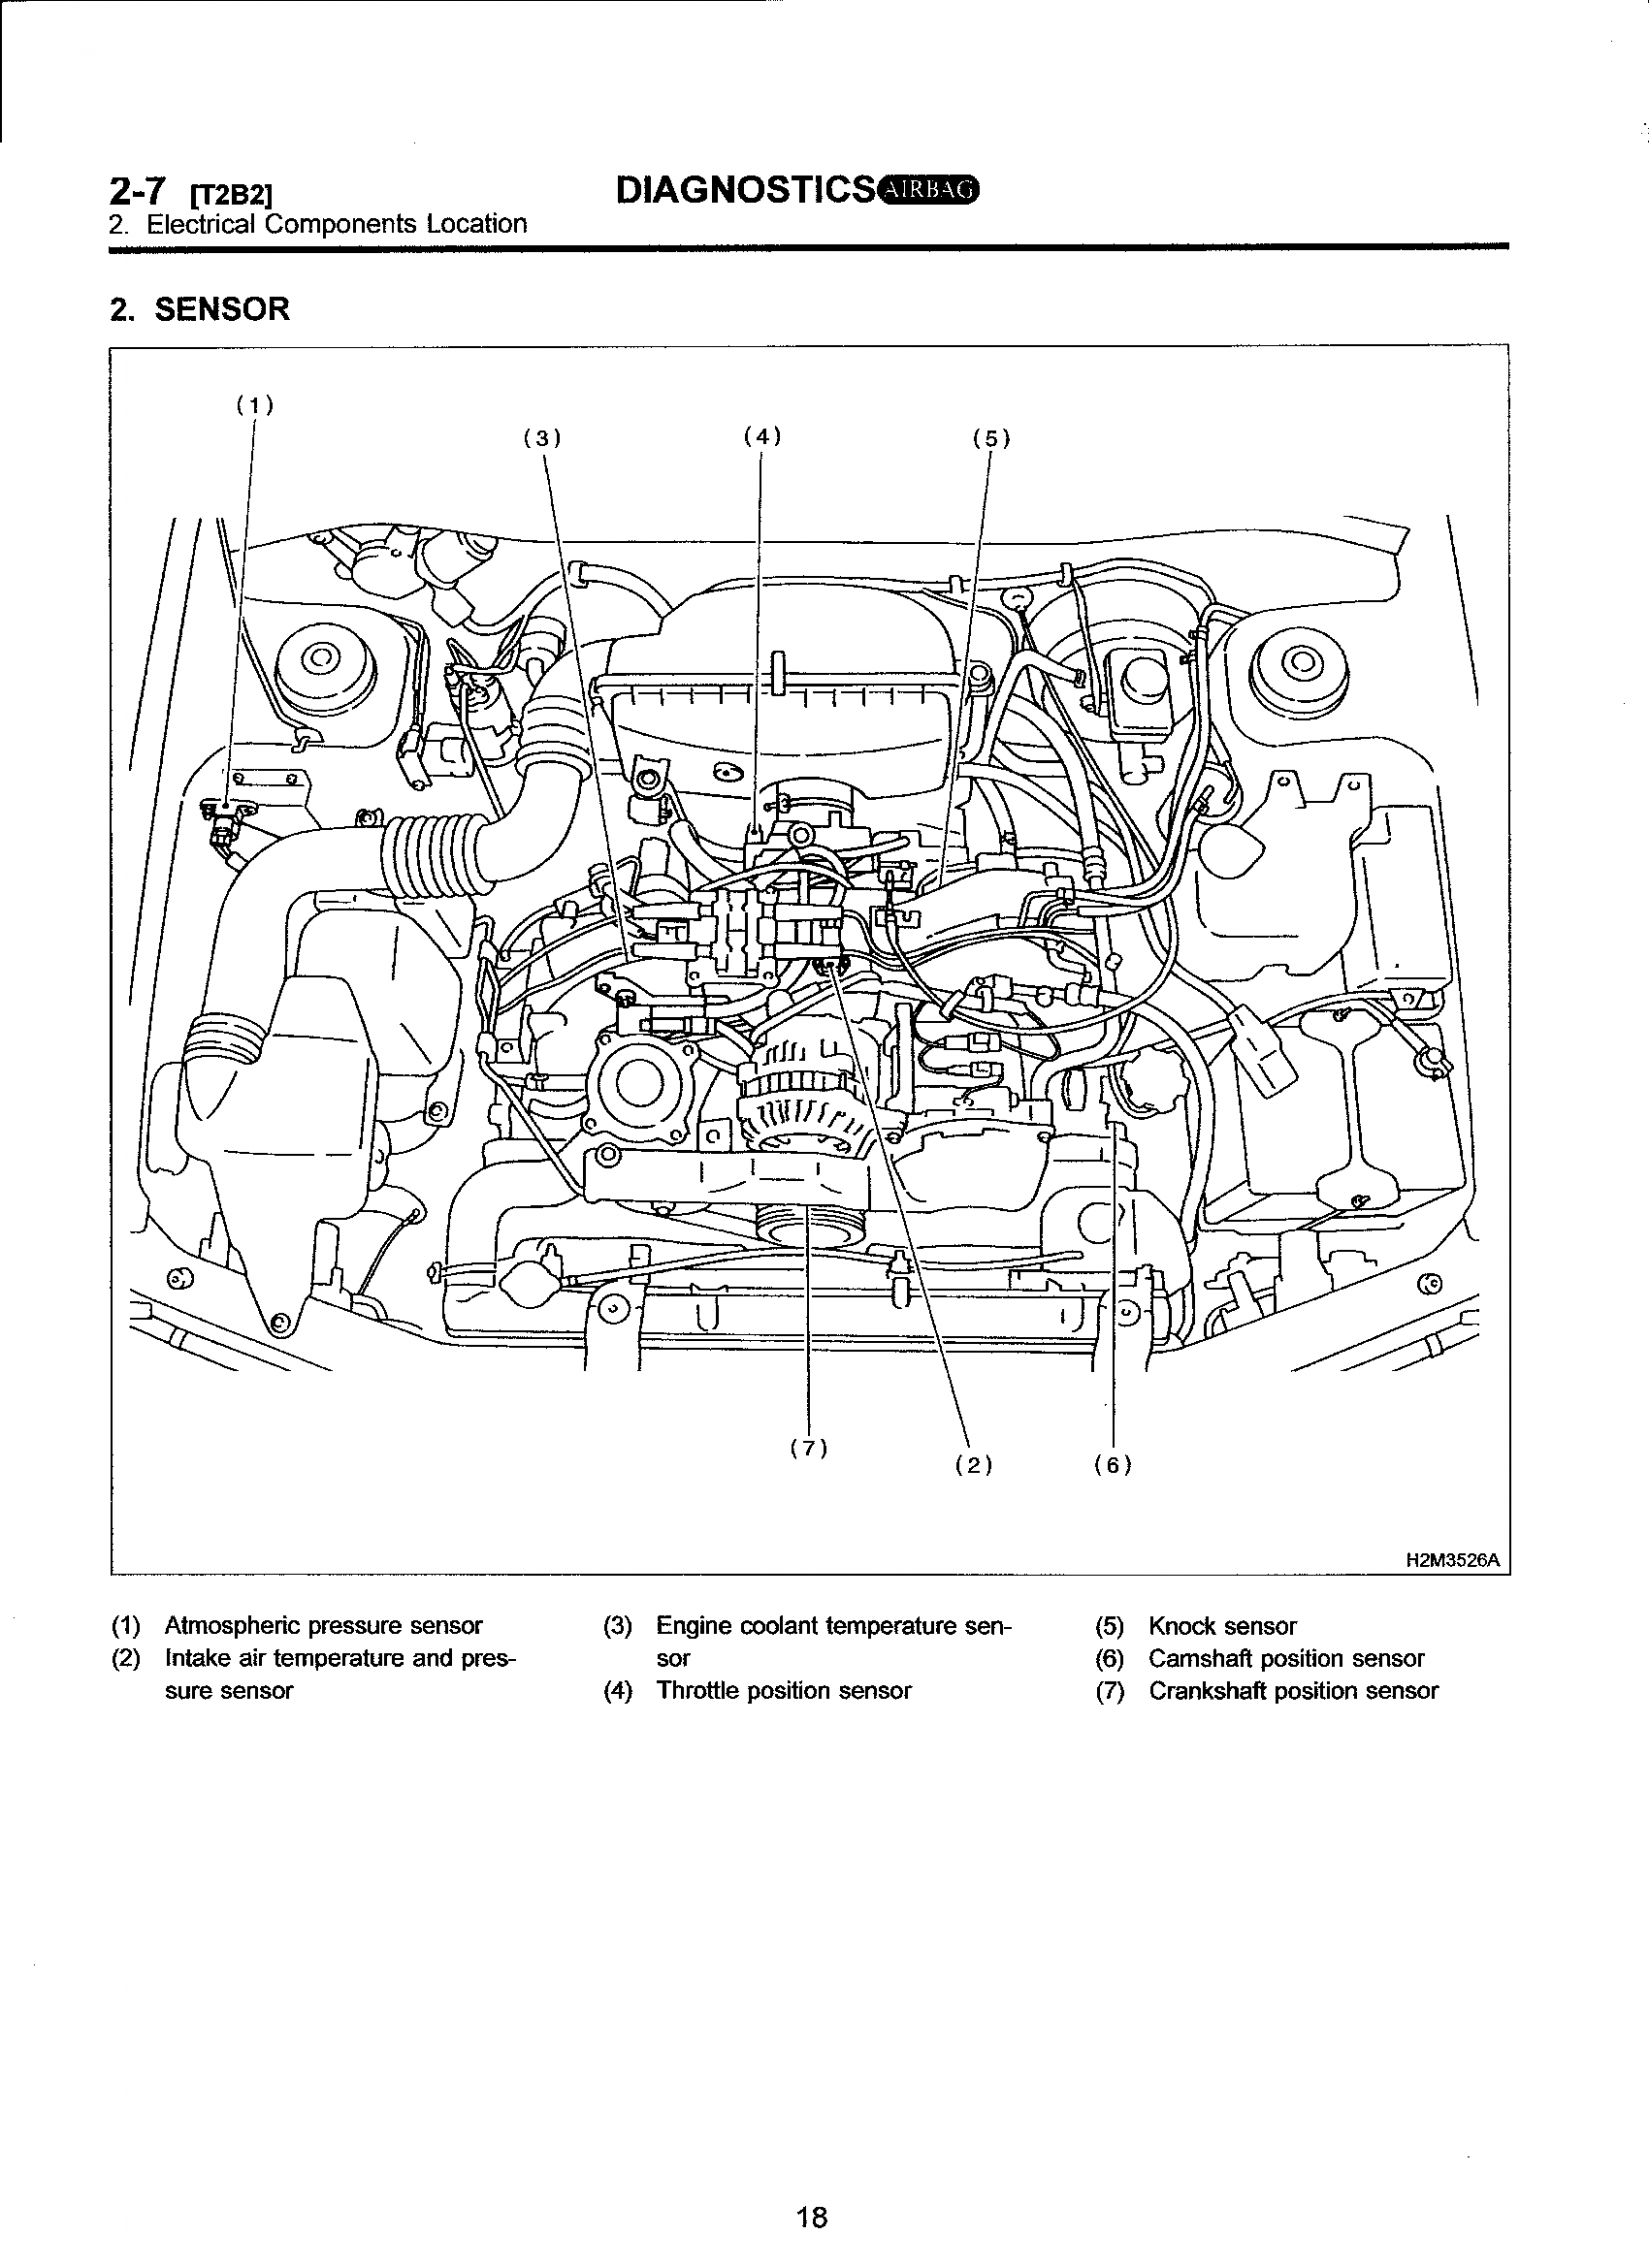 5 Subaru Tribeca Engine Diagram di 2020Pinterest